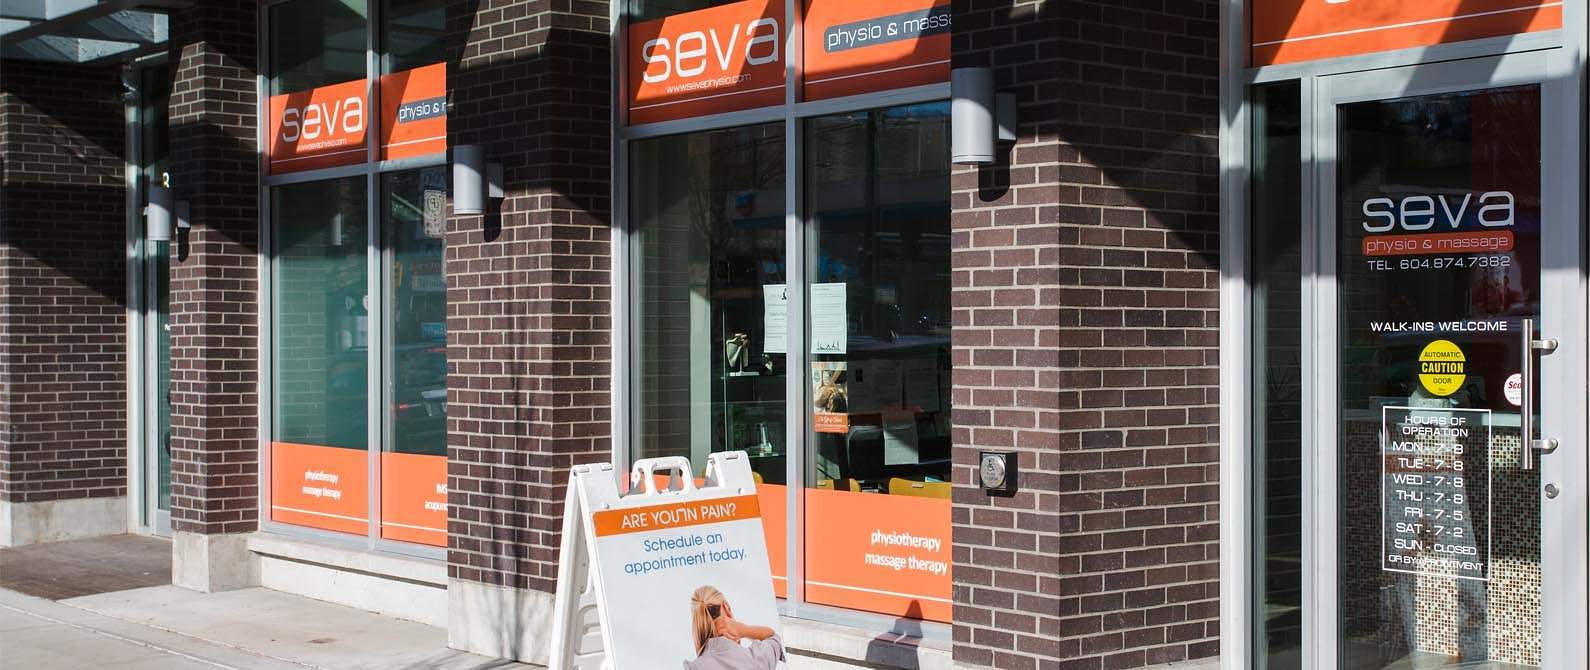 seva-physiotherapy-new-location-slider